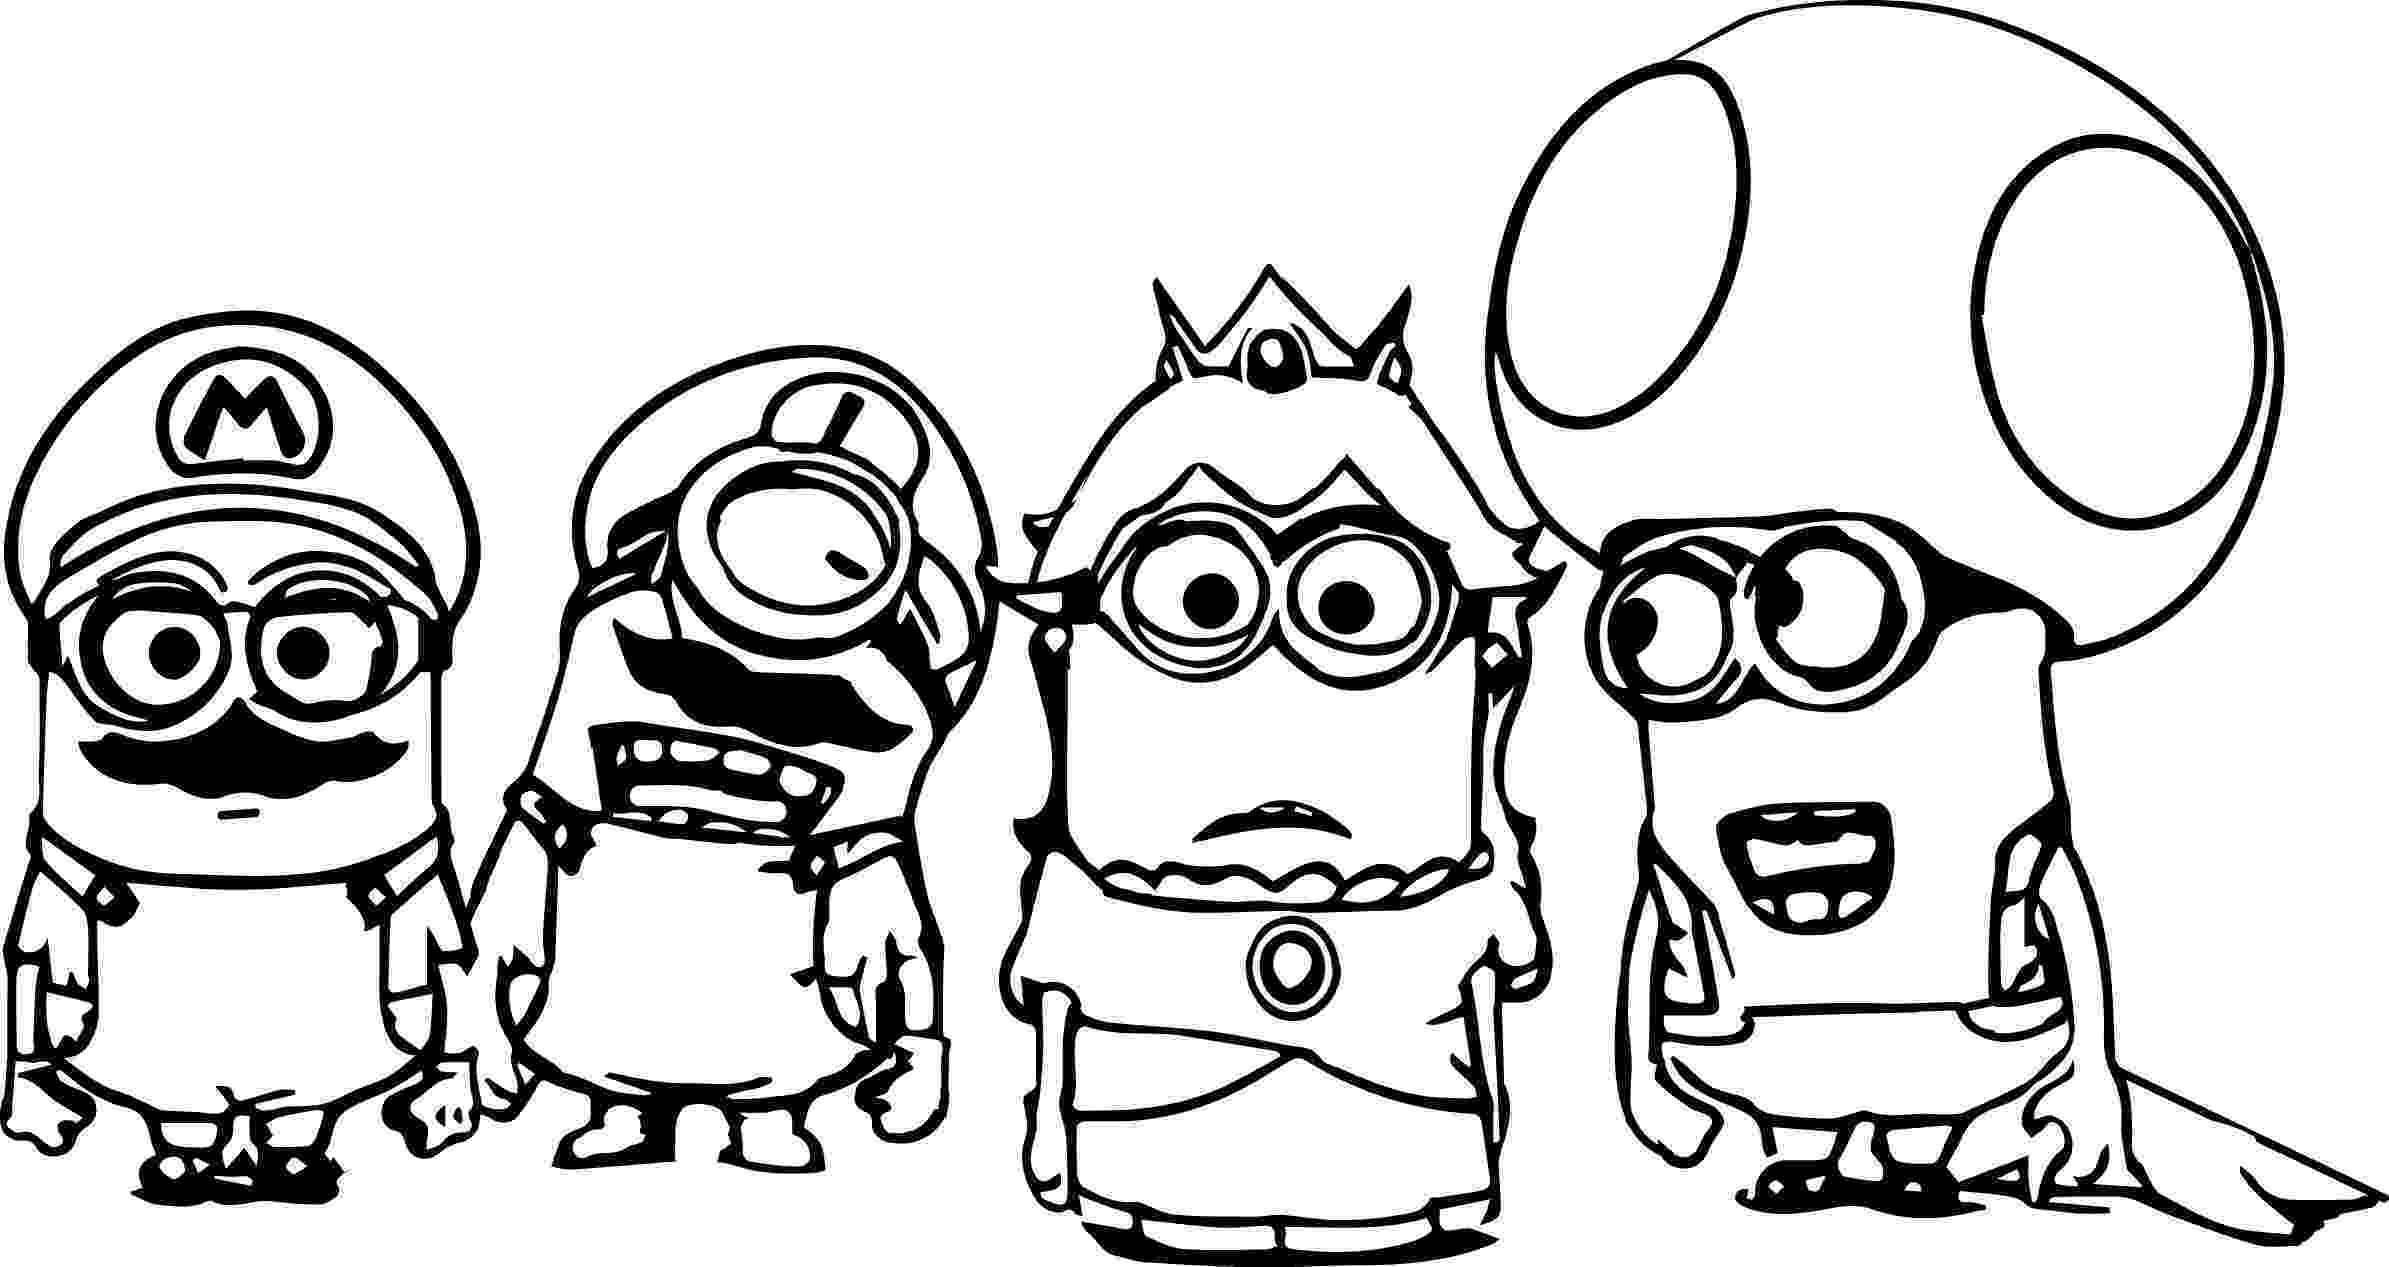 minion coloring pages online minion coloring pages best coloring pages for kids minion online coloring pages